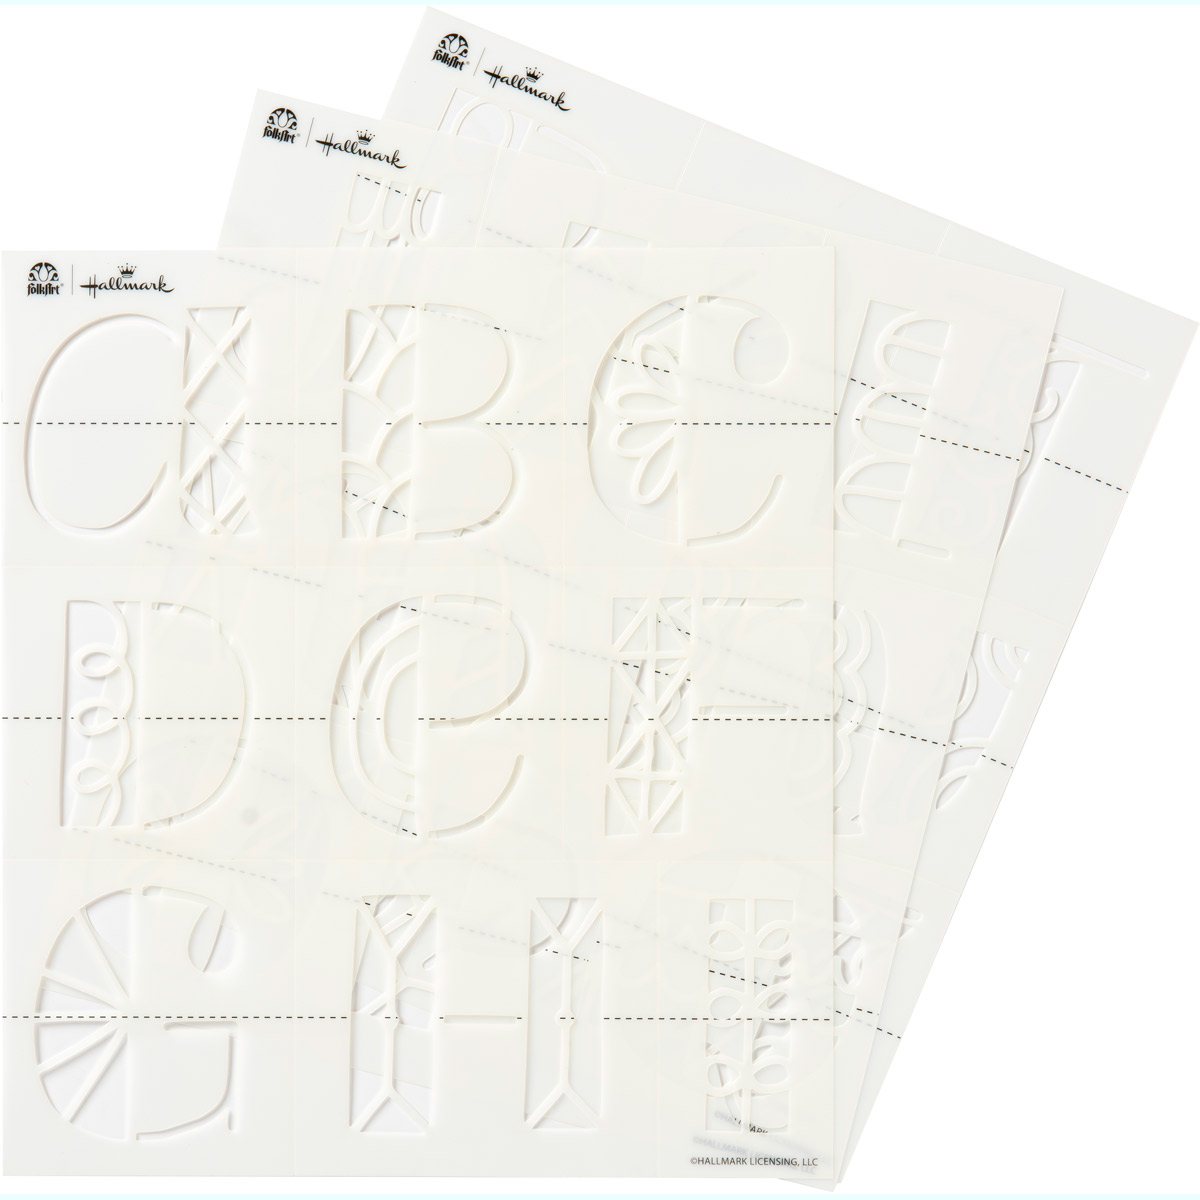 Hallmark Handcrafted Adhesive Stencils - Doodle Font, 8-1/2